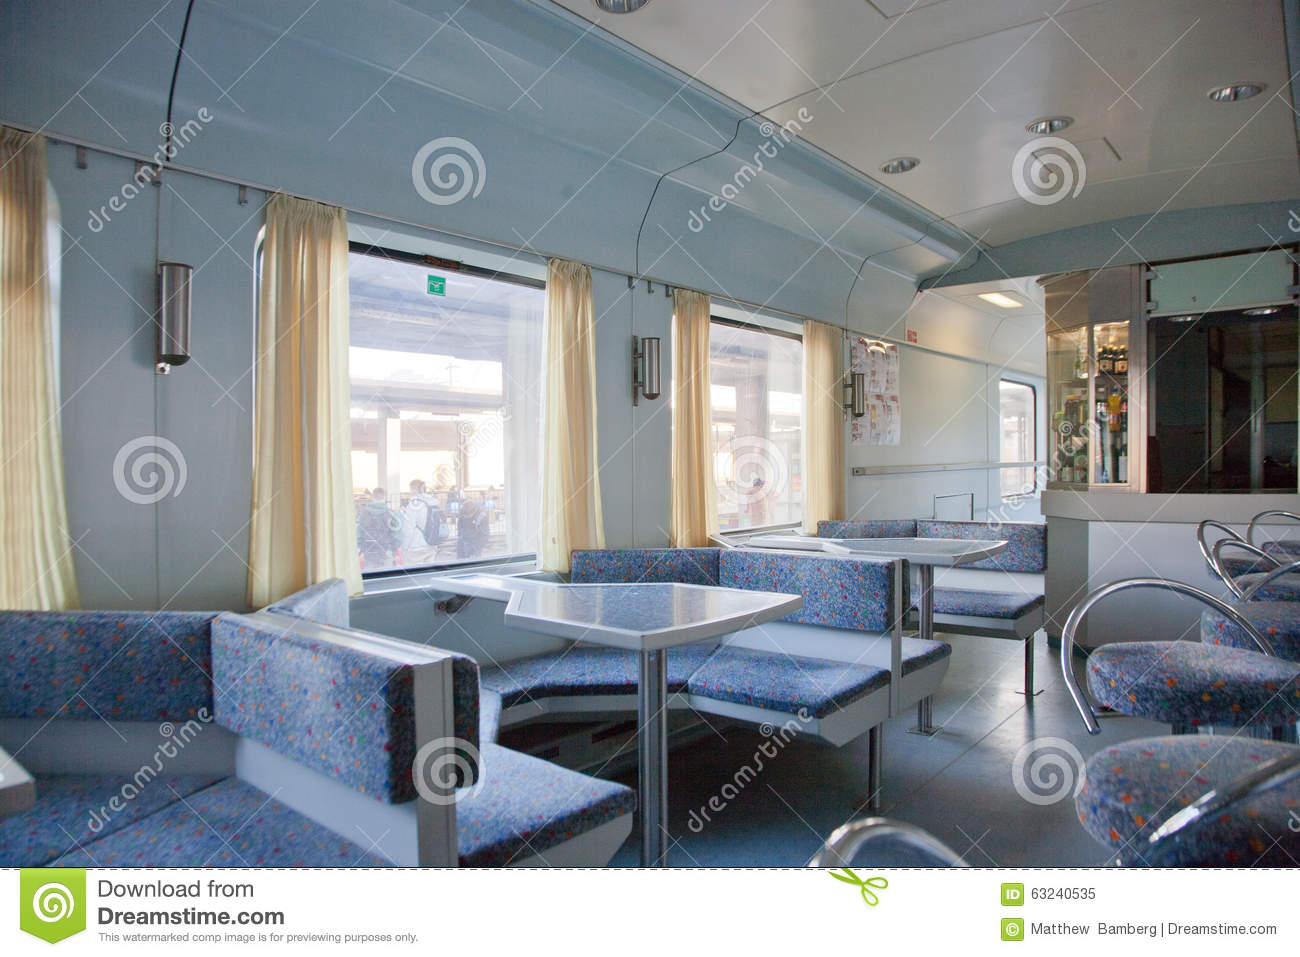 dining car at european train station editorial image image 63240535. Black Bedroom Furniture Sets. Home Design Ideas